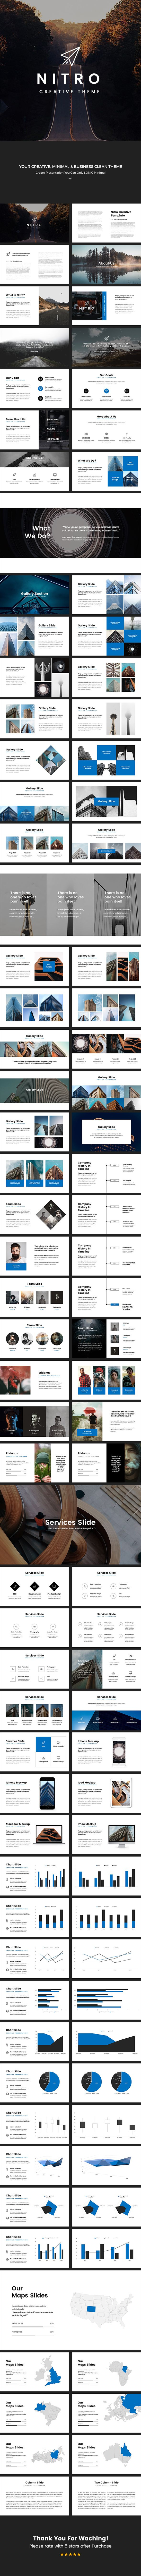 Nitro - Creative Powerpoint Template